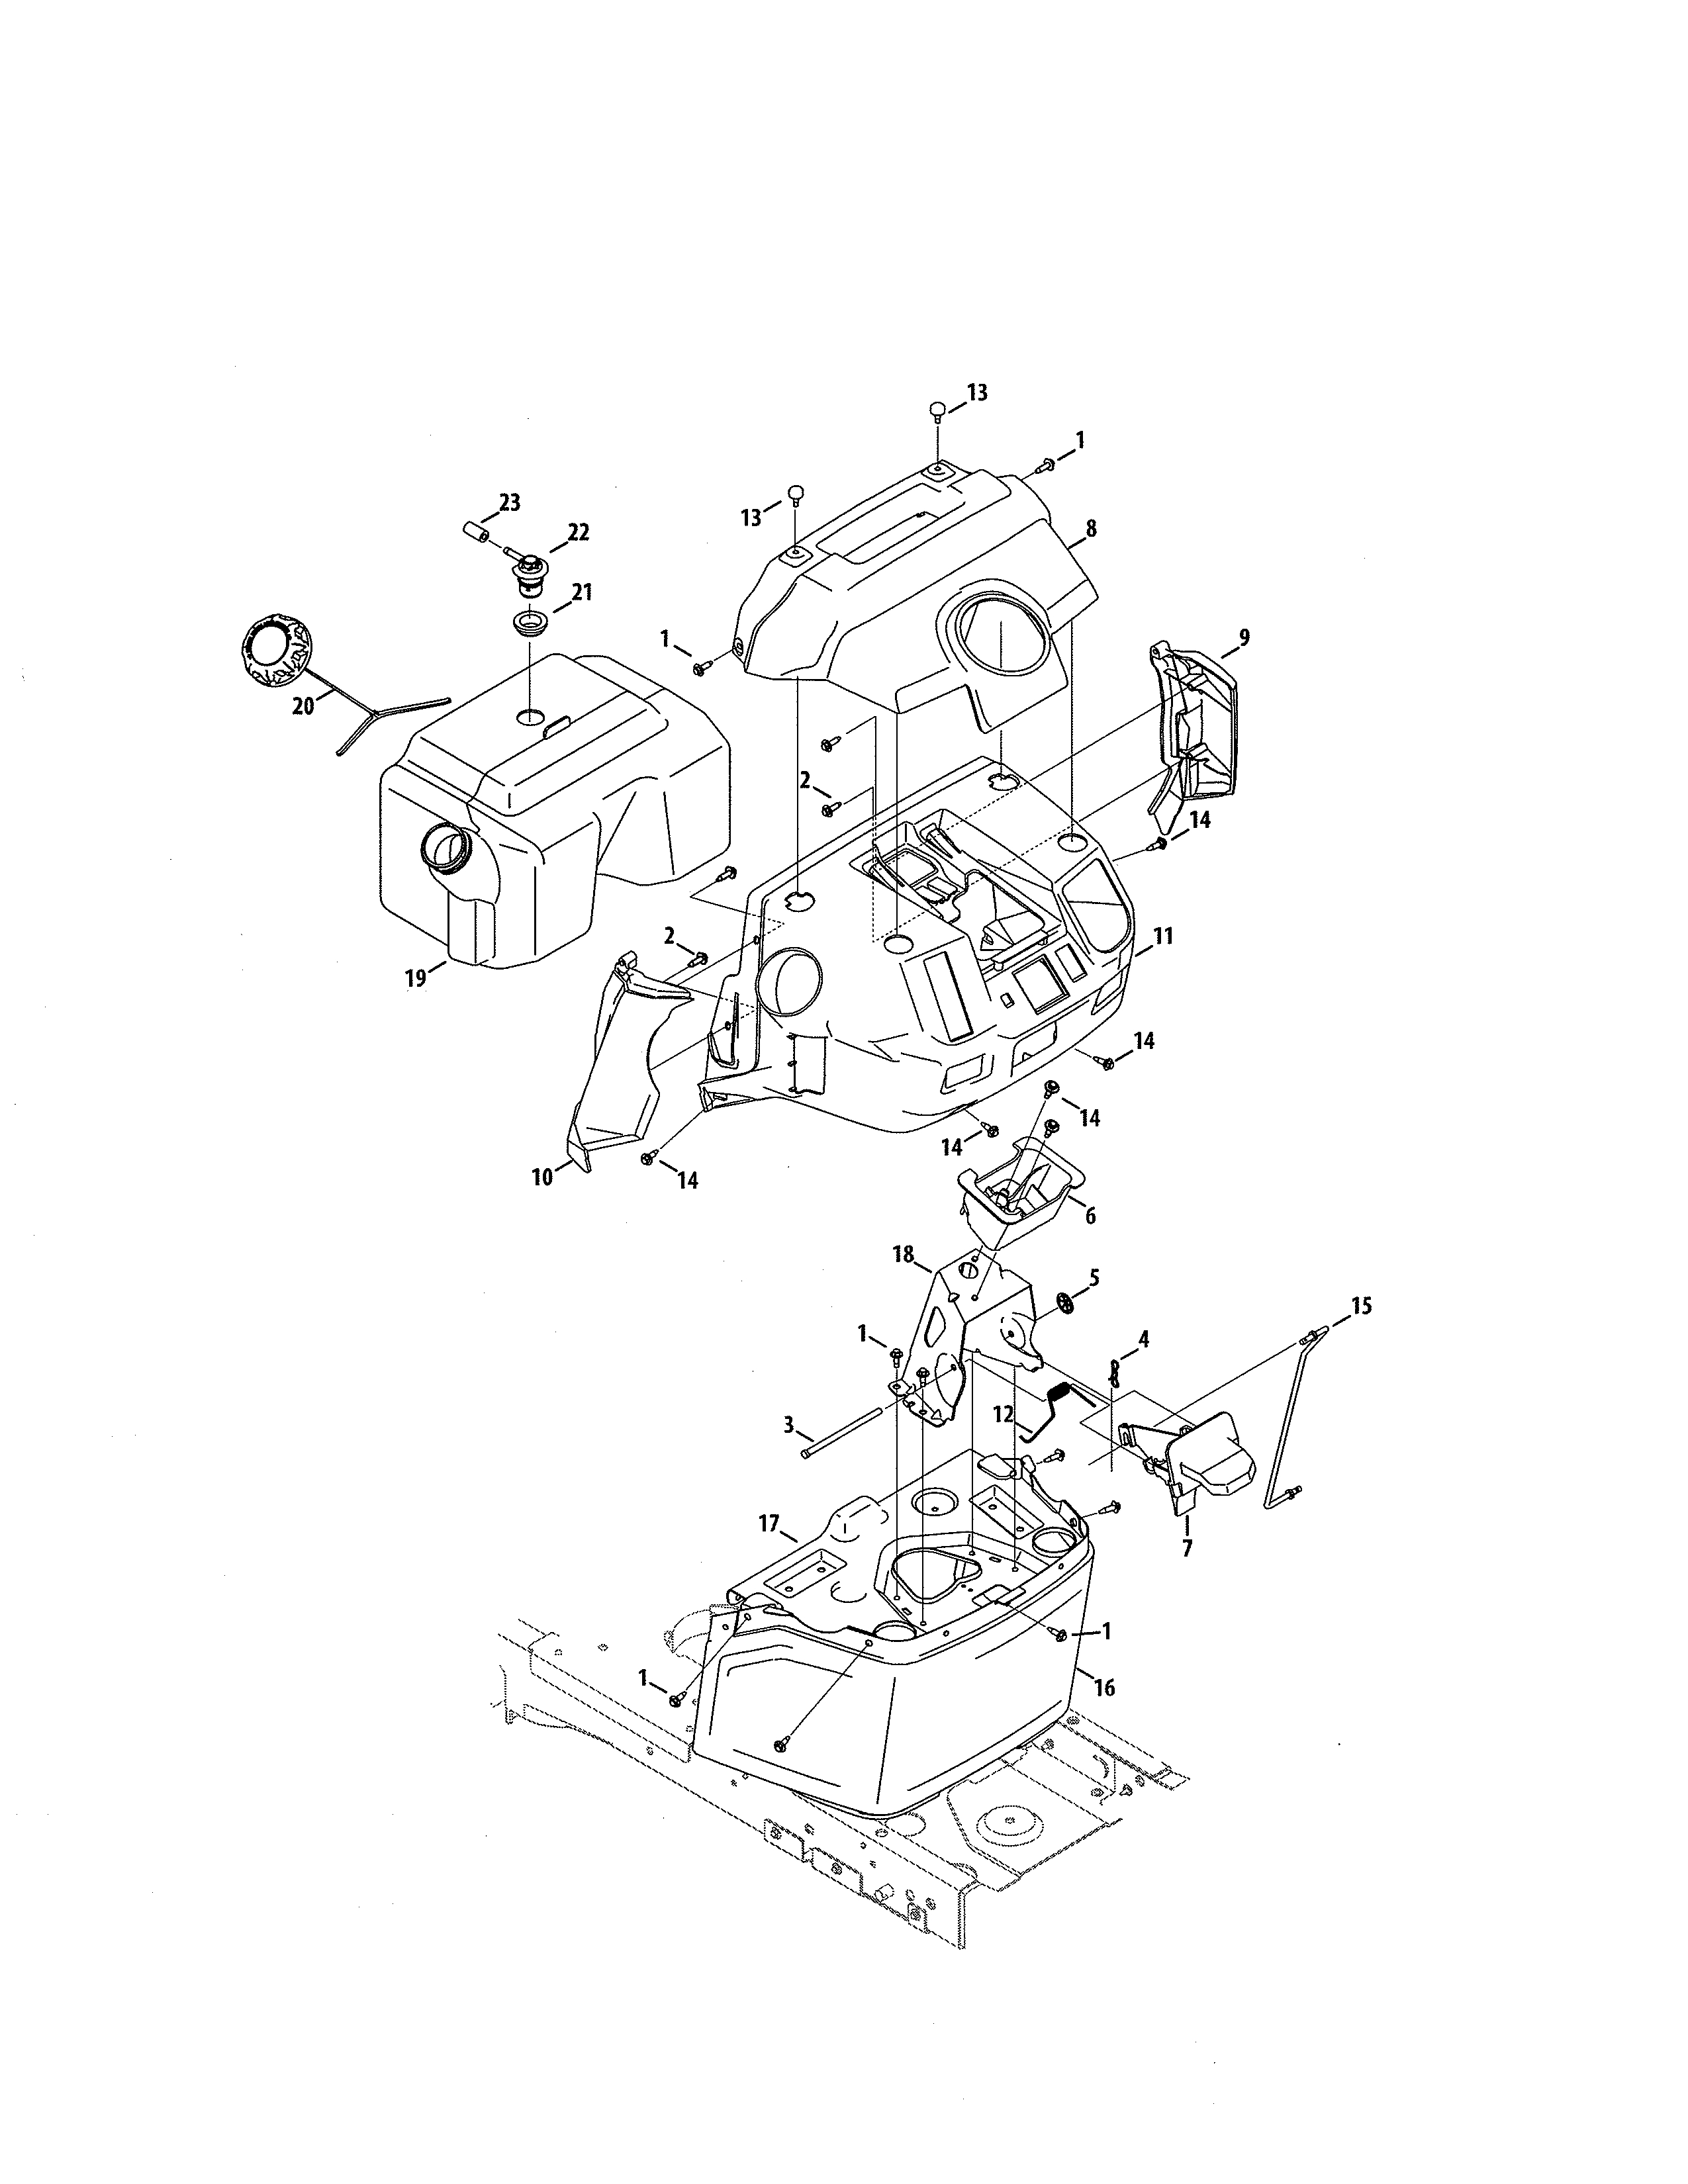 Craftsman Hydrostatic Transmission Diagram Looking For Craftsman Model 247204420 Front Engine Lawn Tractor